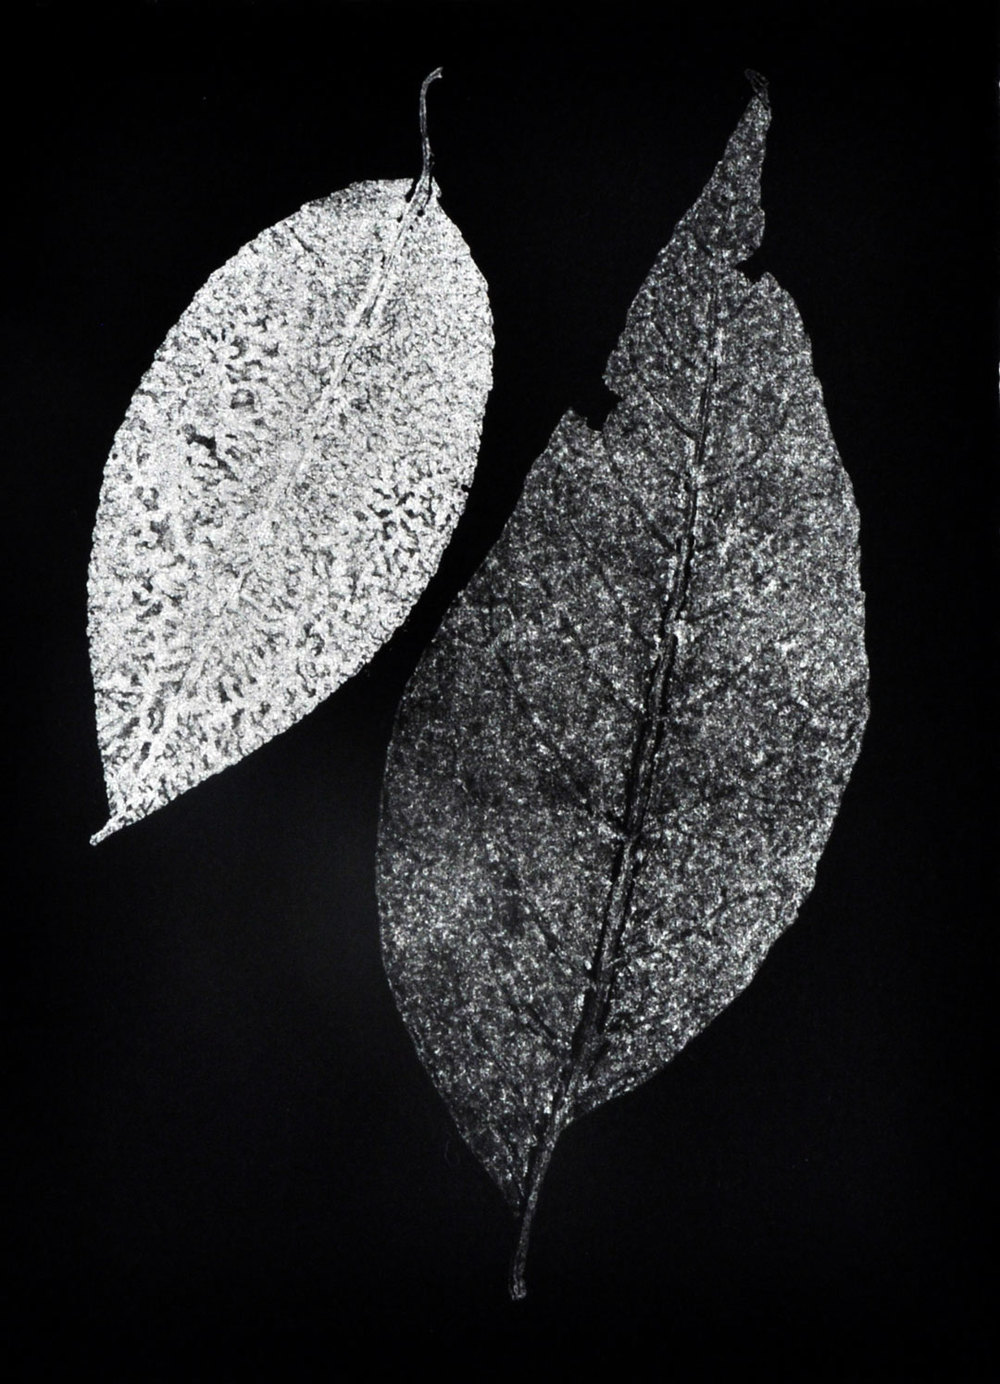 "Monotype, 2014, Christine Mauersberger dried and flattened Leaves, silver ink, black somerset paper. 5 1/2"" x 7 1/2"""